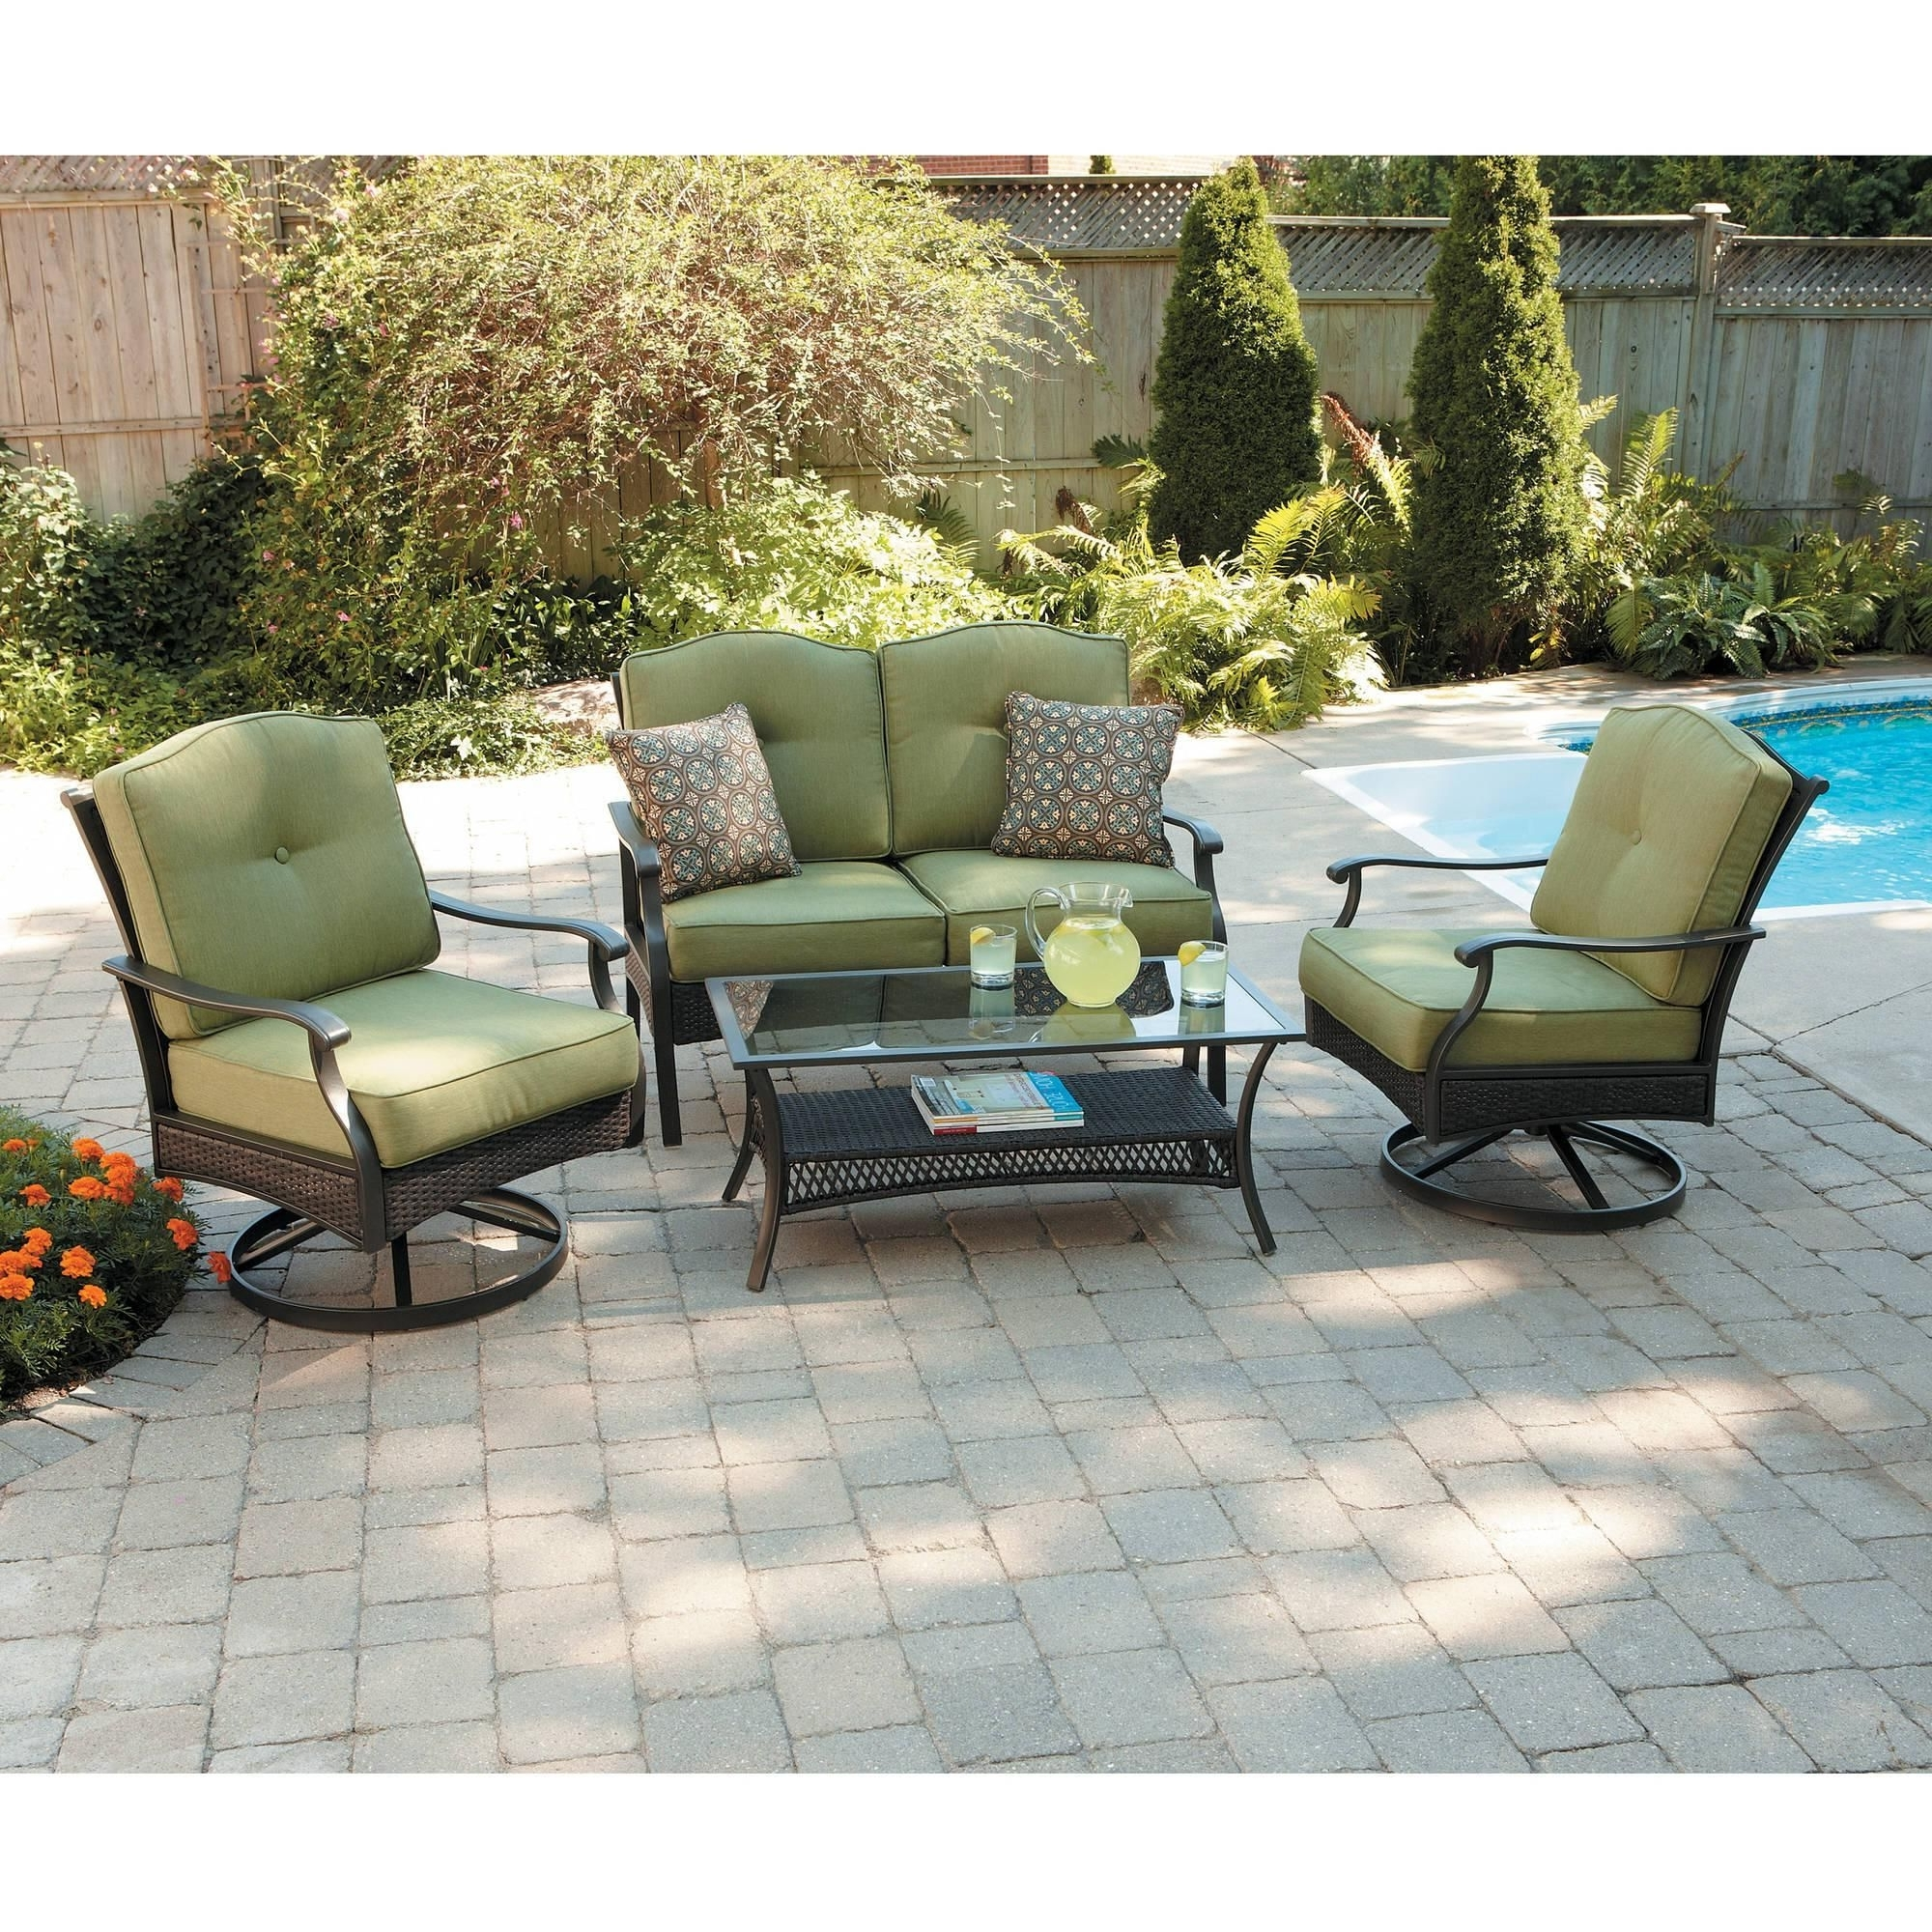 Better Homes And Gardens Providence 4 Piece Patio Conversation Set Pertaining To Latest 4 Piece Patio Conversation Sets (View 14 of 20)